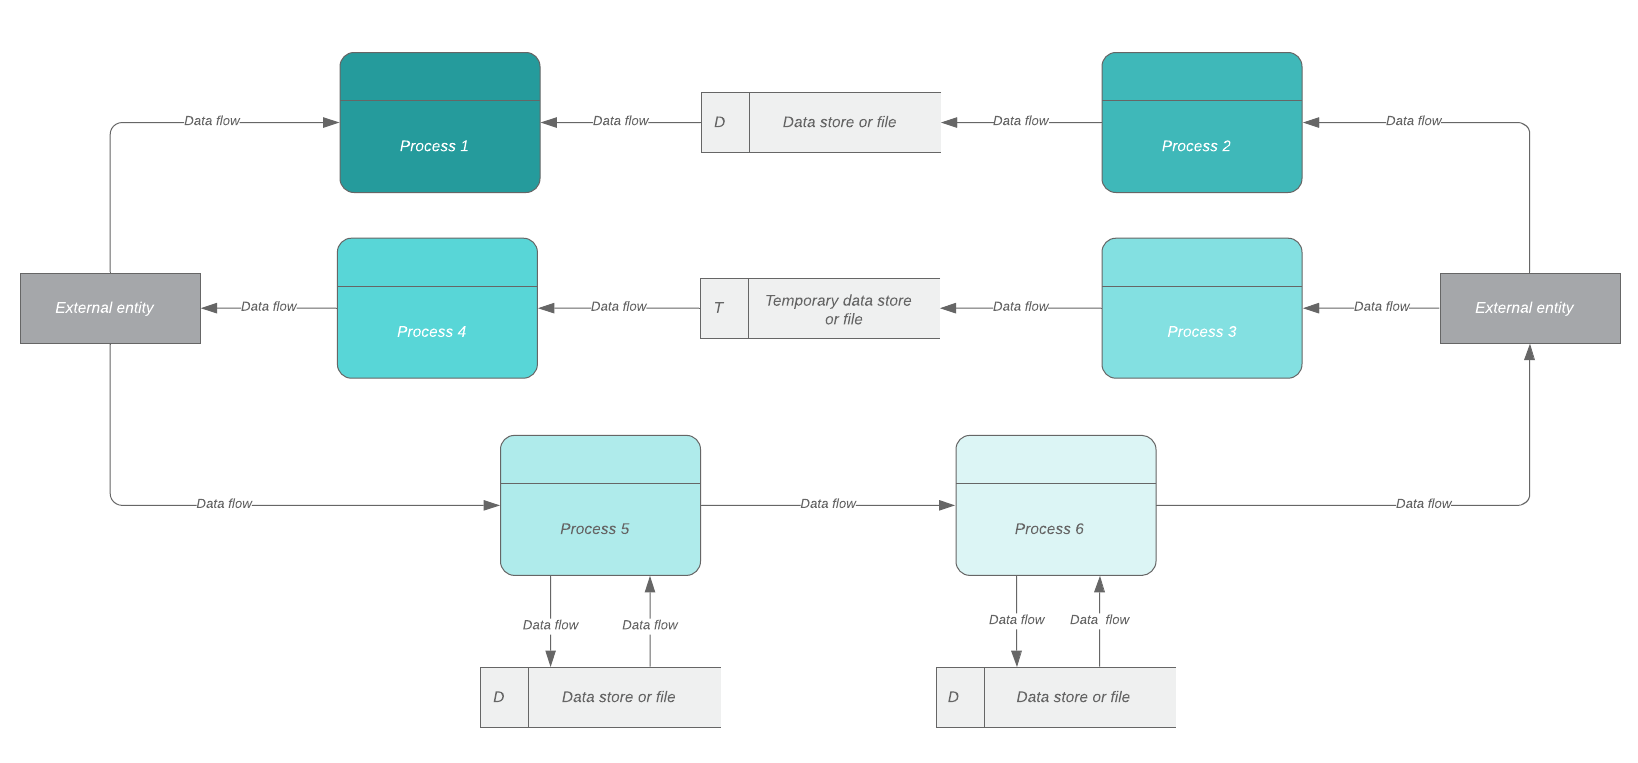 Data flow diagram physical systems template